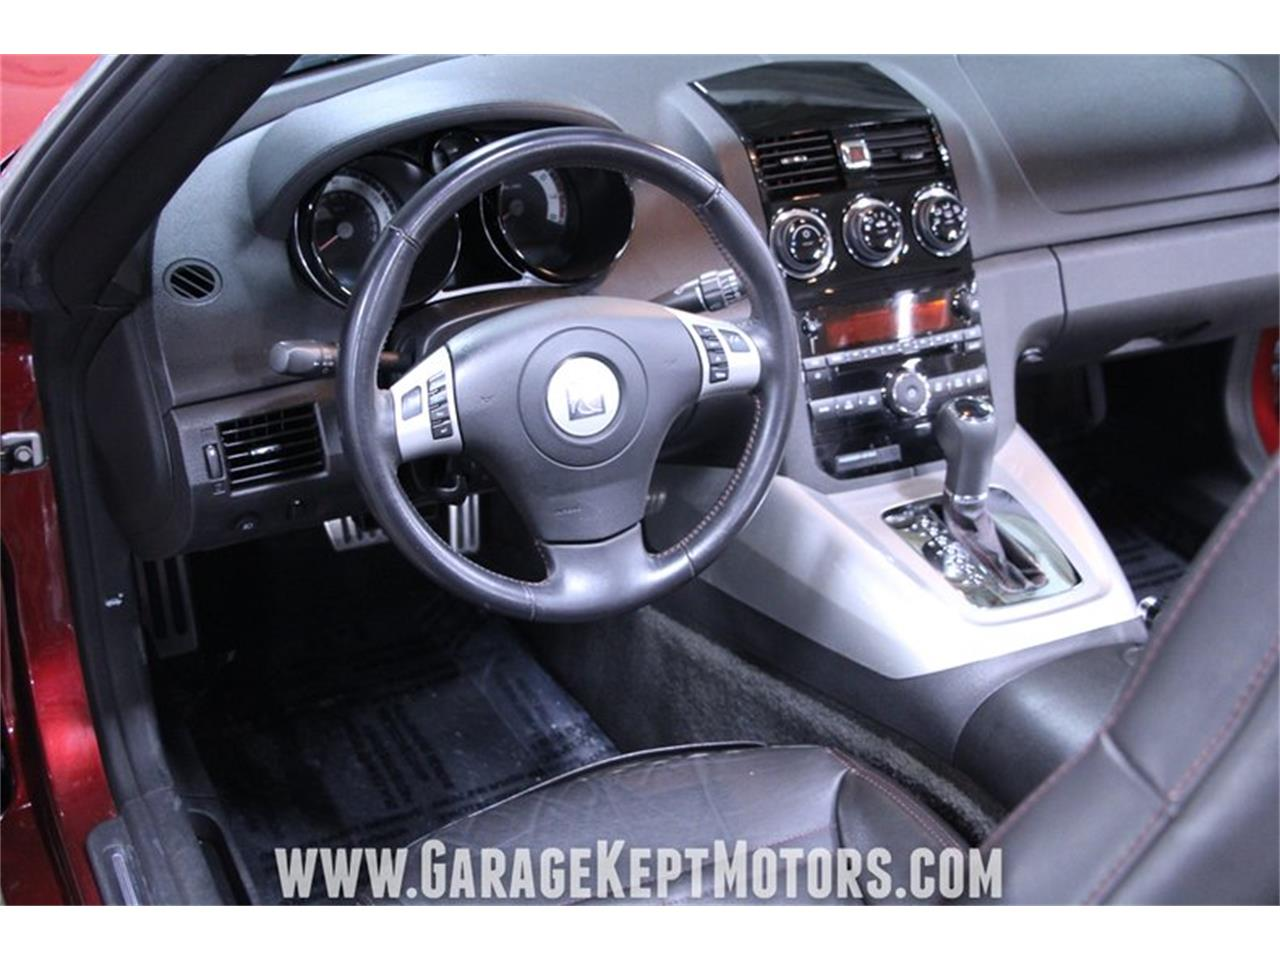 2009 Saturn Sky for sale in Grand Rapids, MI – photo 66